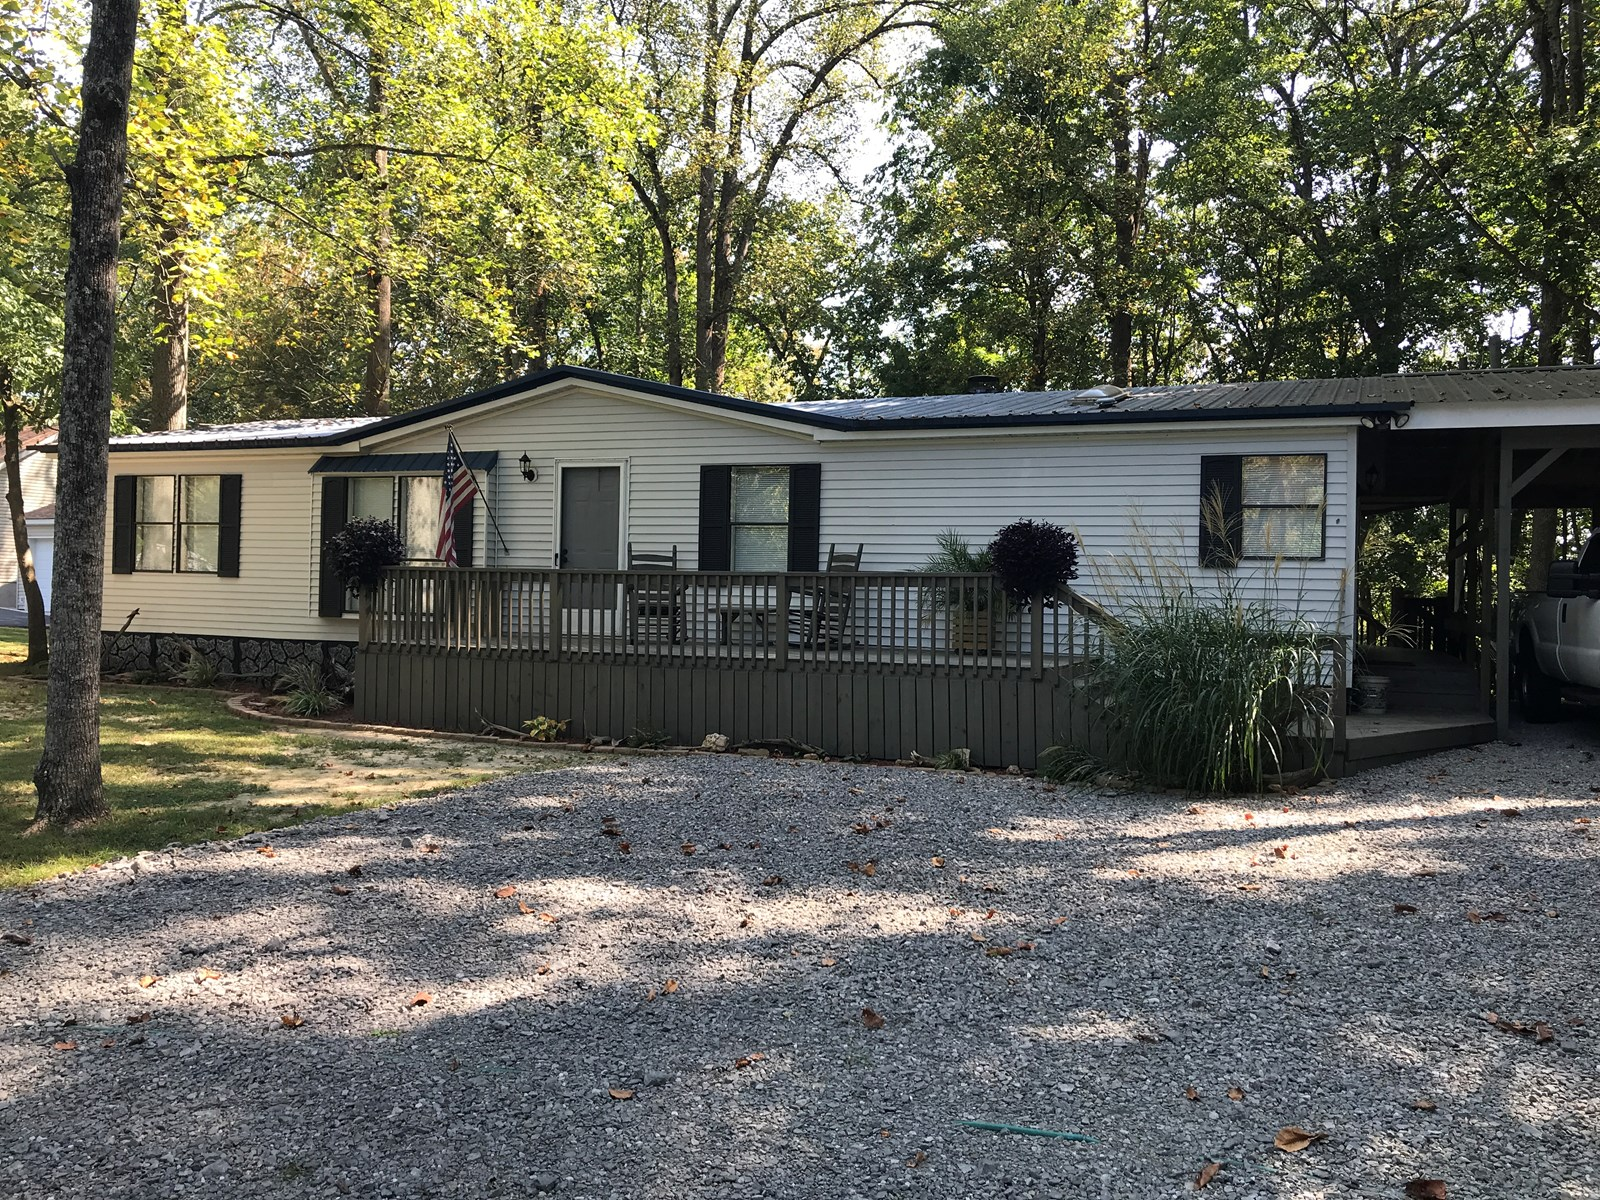 Home for sale only minutes from Dale Hollow Lake, Albany KY